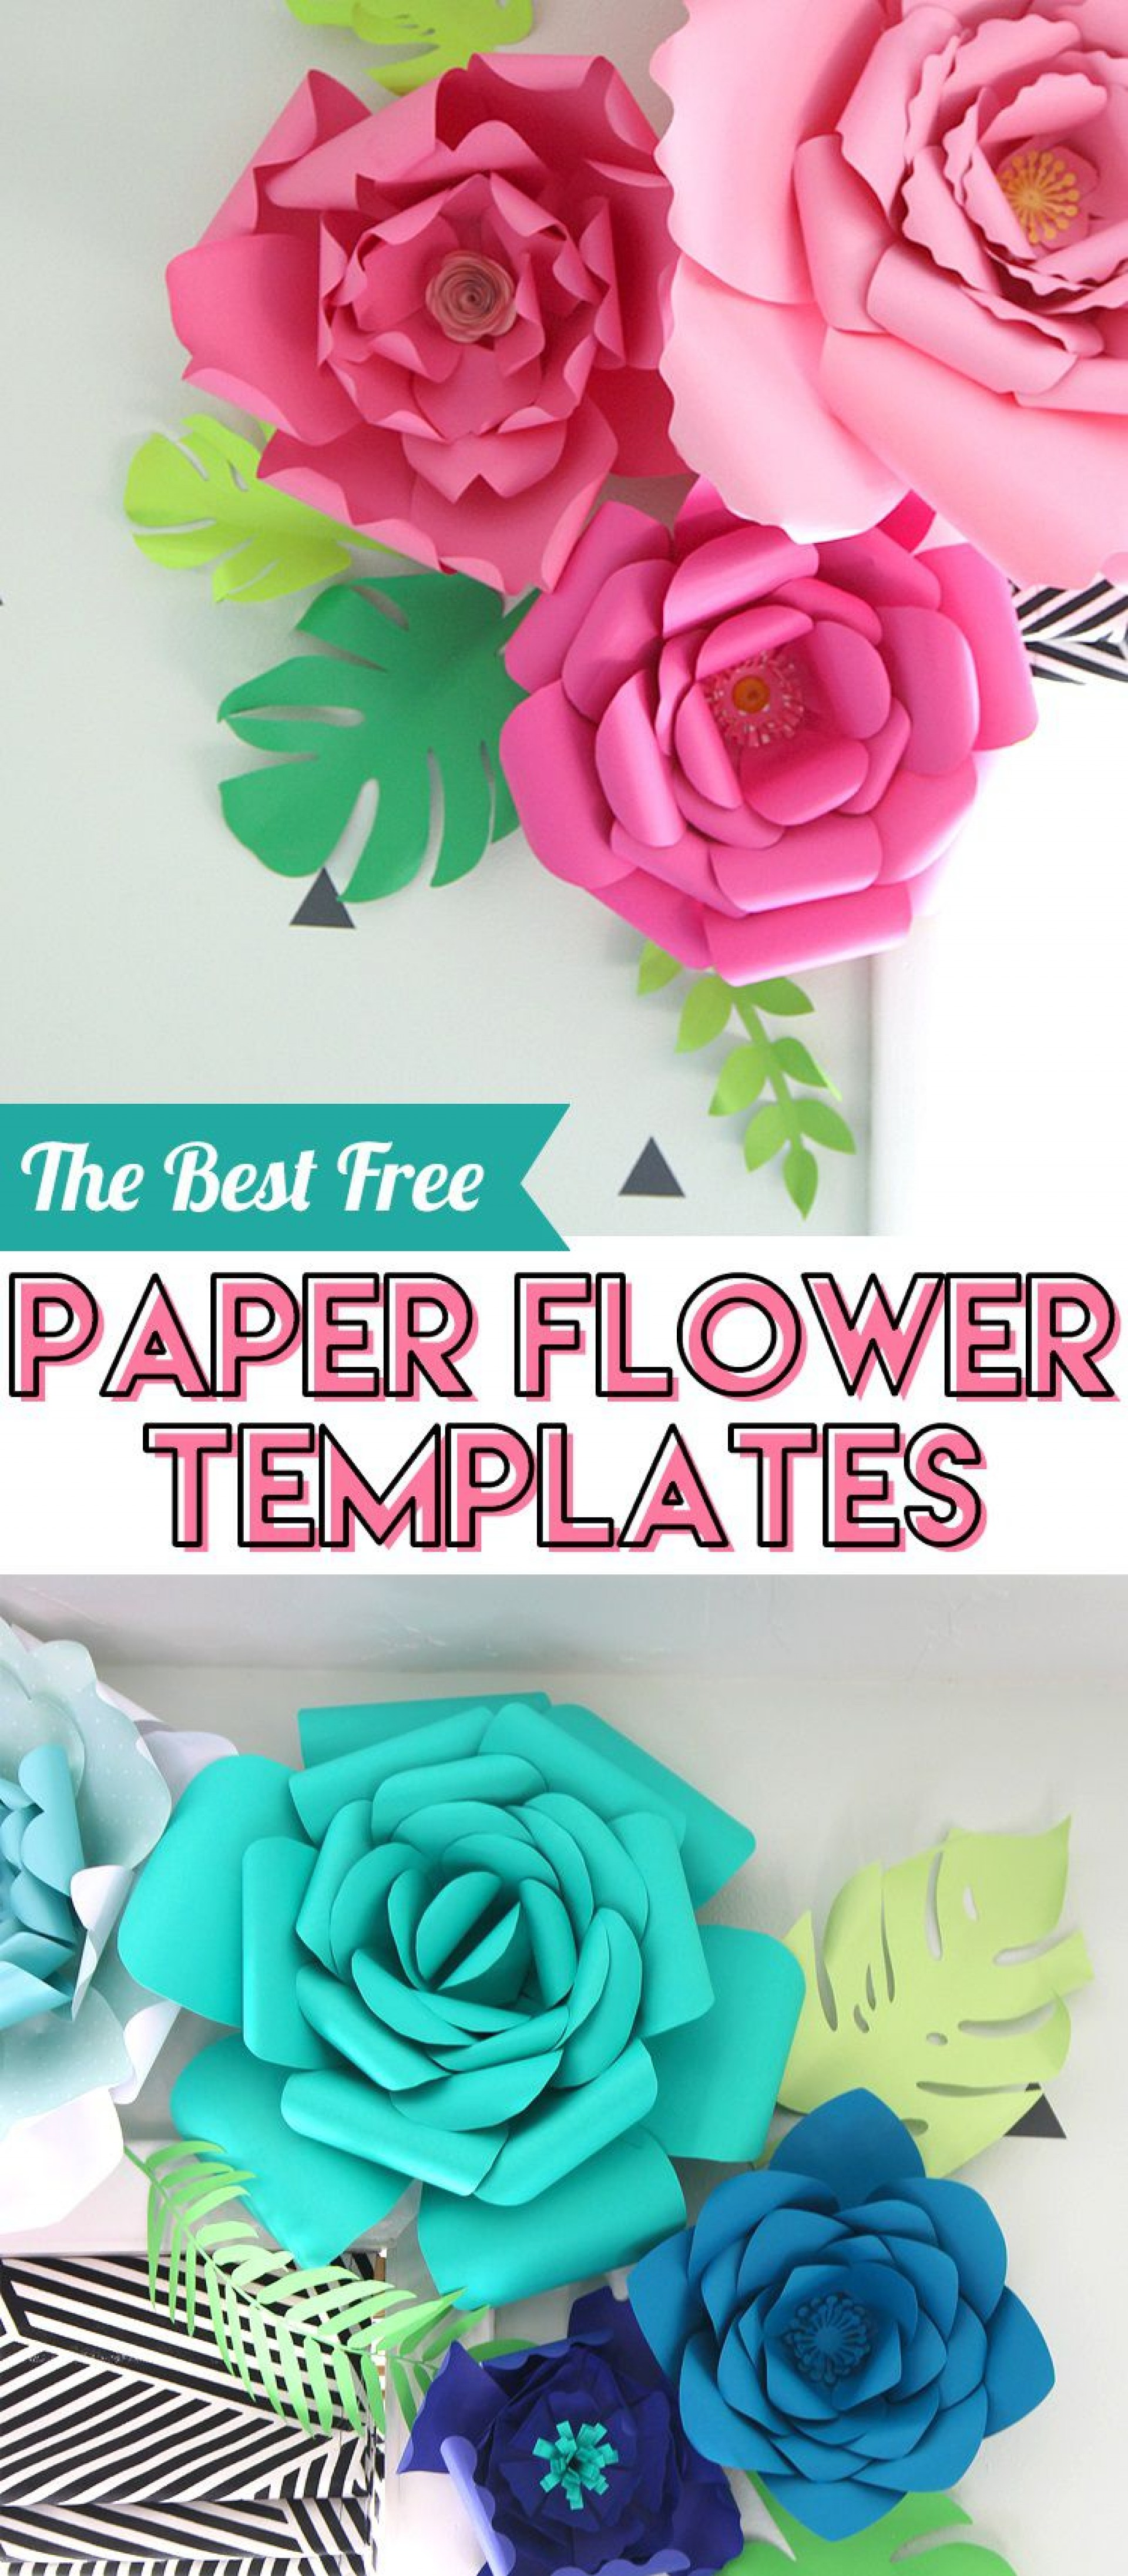 007 Impressive Giant Paper Flower Template Free Download Picture 1920